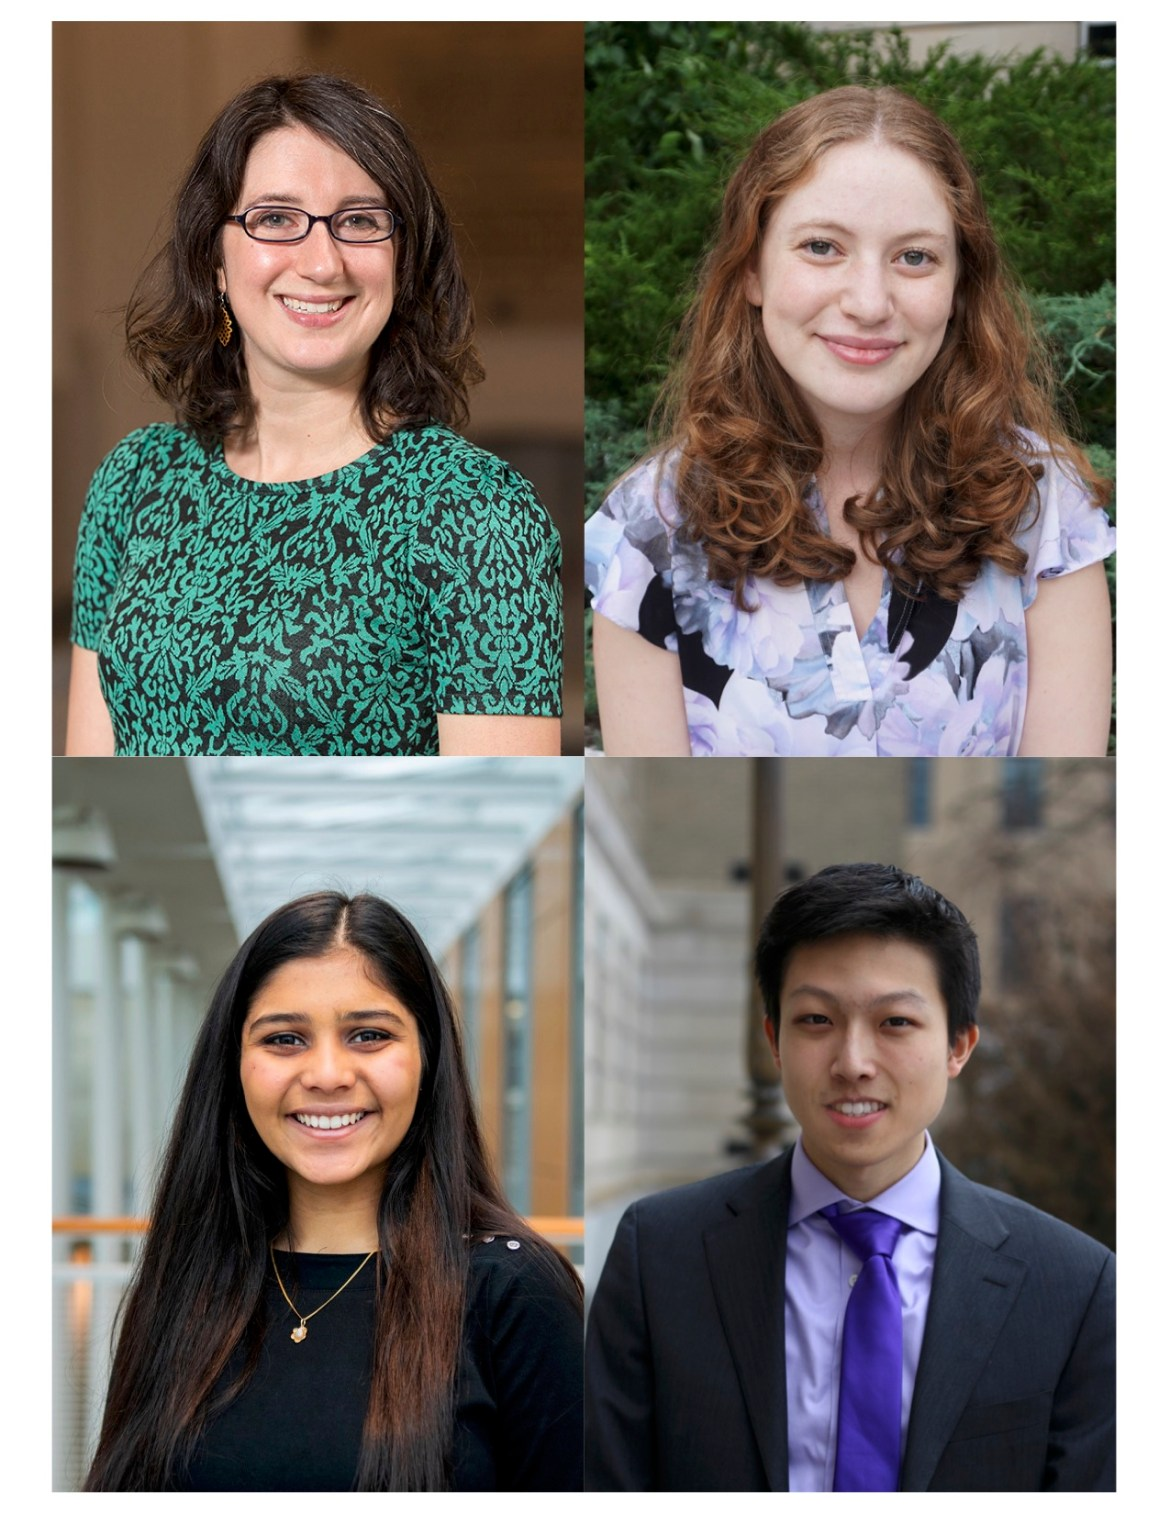 Three Cornell students and Cornell Career Services shared their tips and tricks to successful networking, ranging from starting conversations with strangers, taking on leadership roles, and planning a nice night to yourself afterwards.